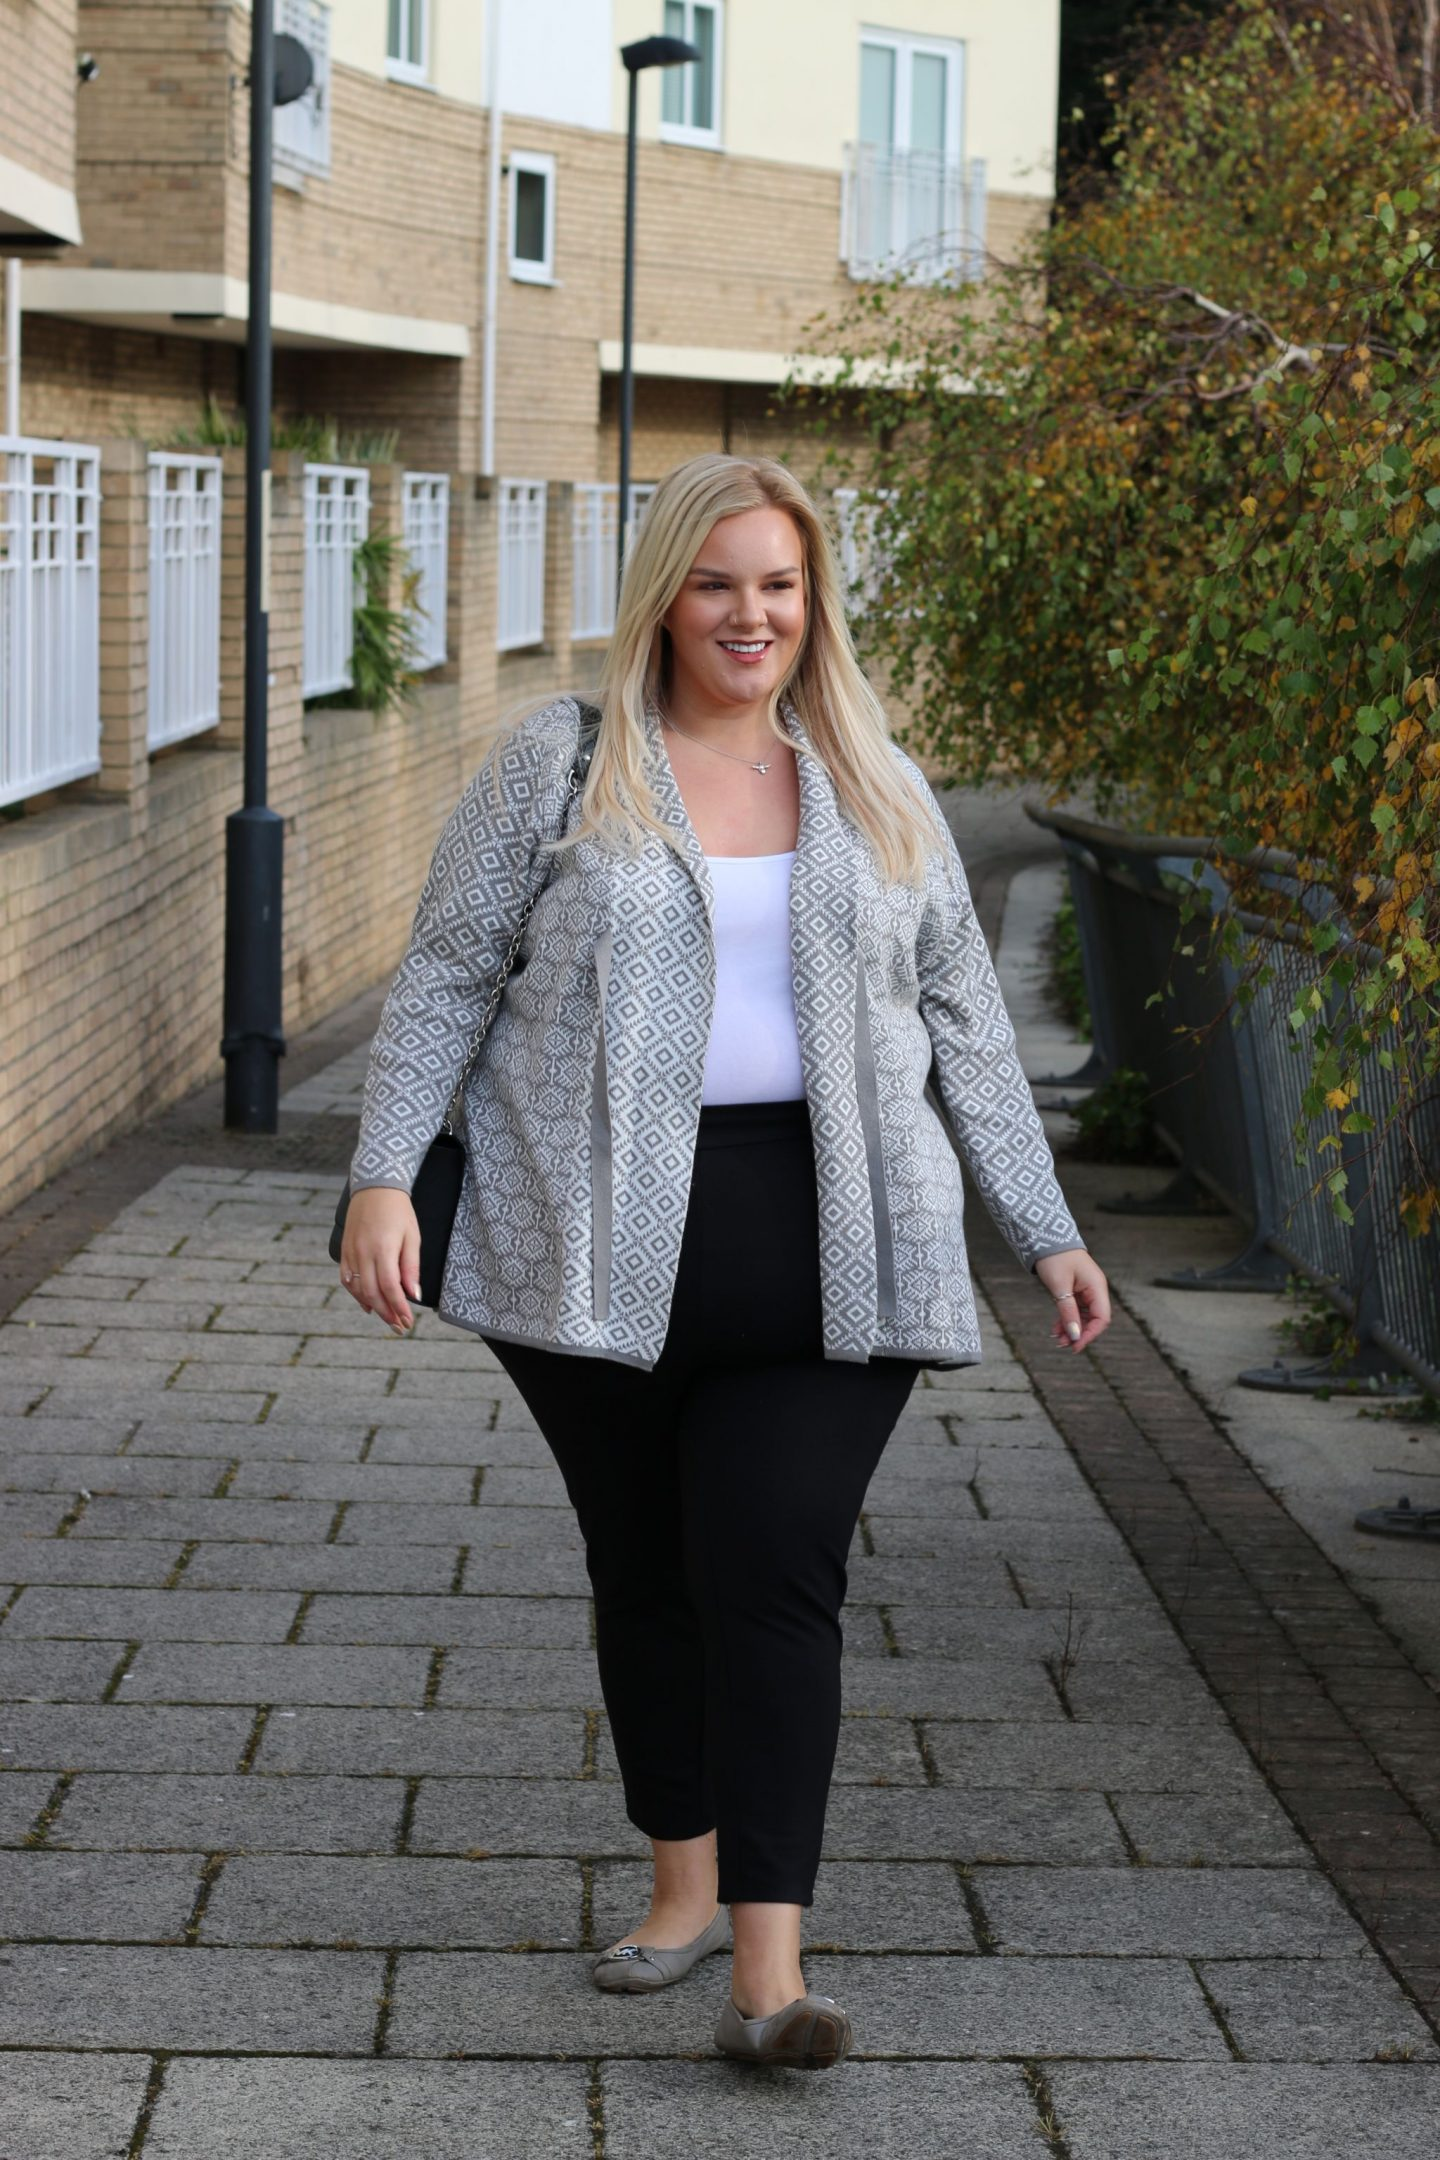 WhatLauraLoves Plus Size Blogger Curvissa